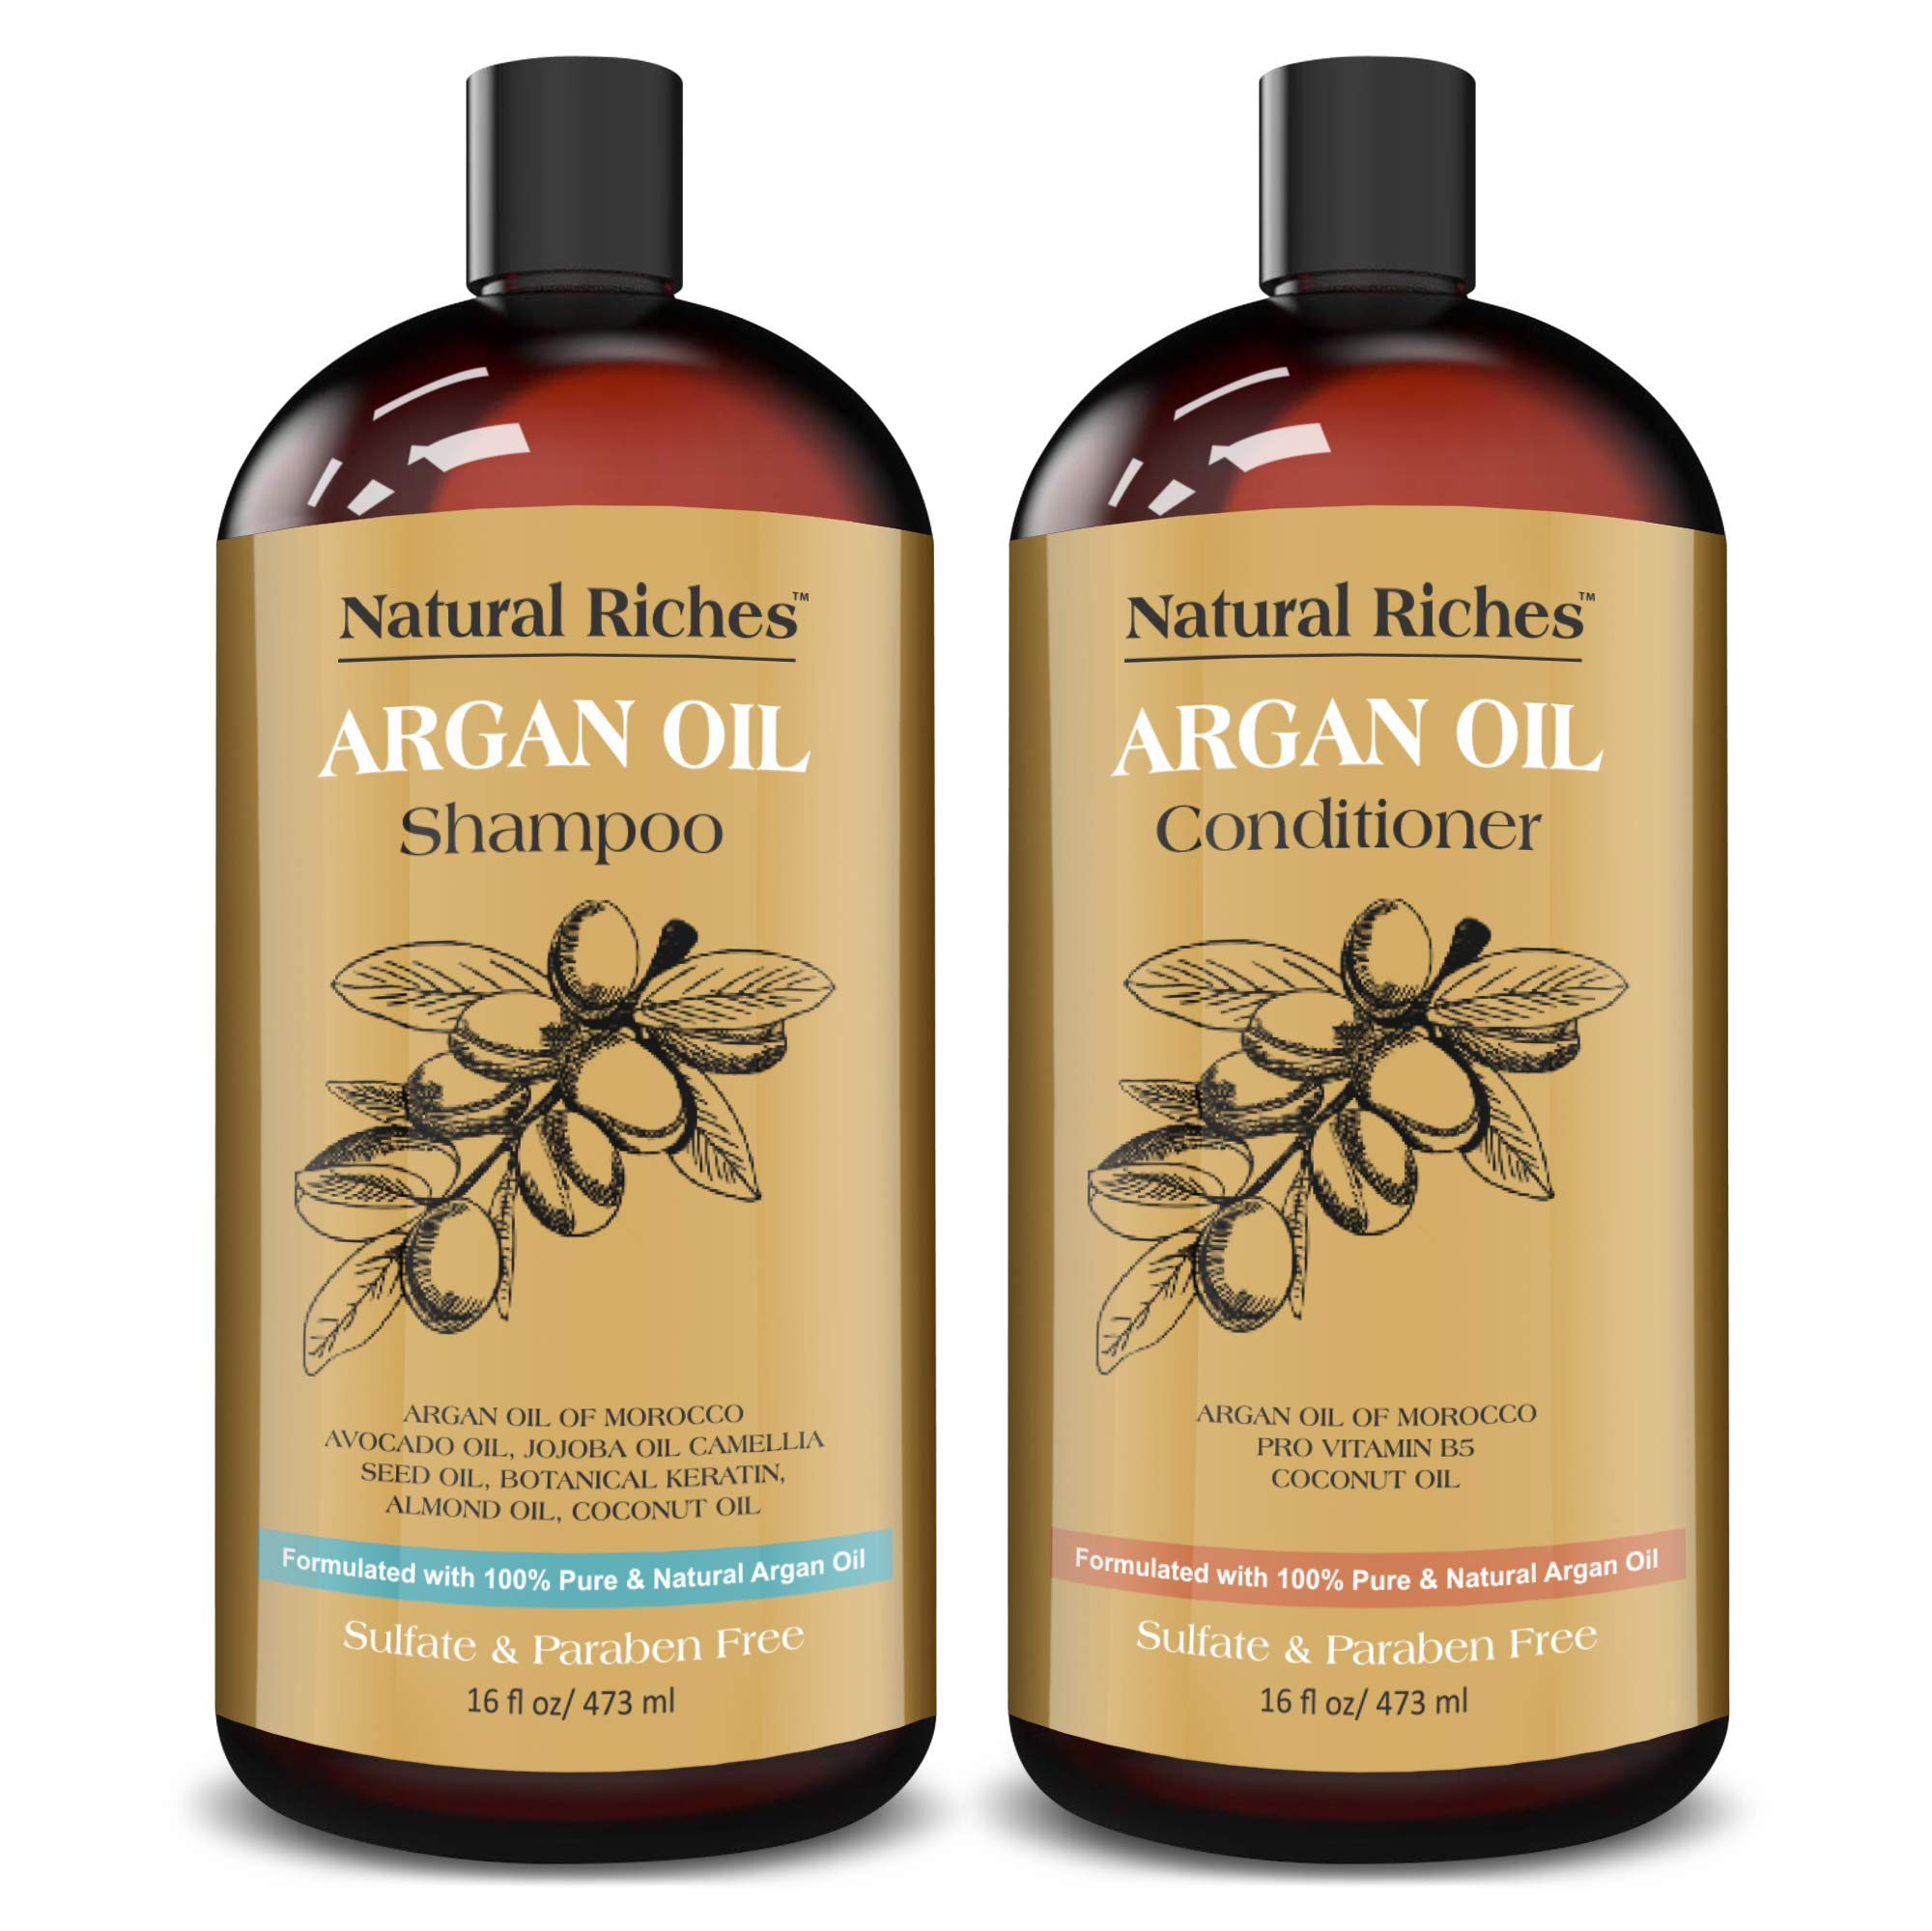 Natural Riches Moroccan Argan Oil Organic Shampoo & Conditioner Set Sulfate Free, Vitamin enriched infused with Keratin. (2 x 16 Fl oz)